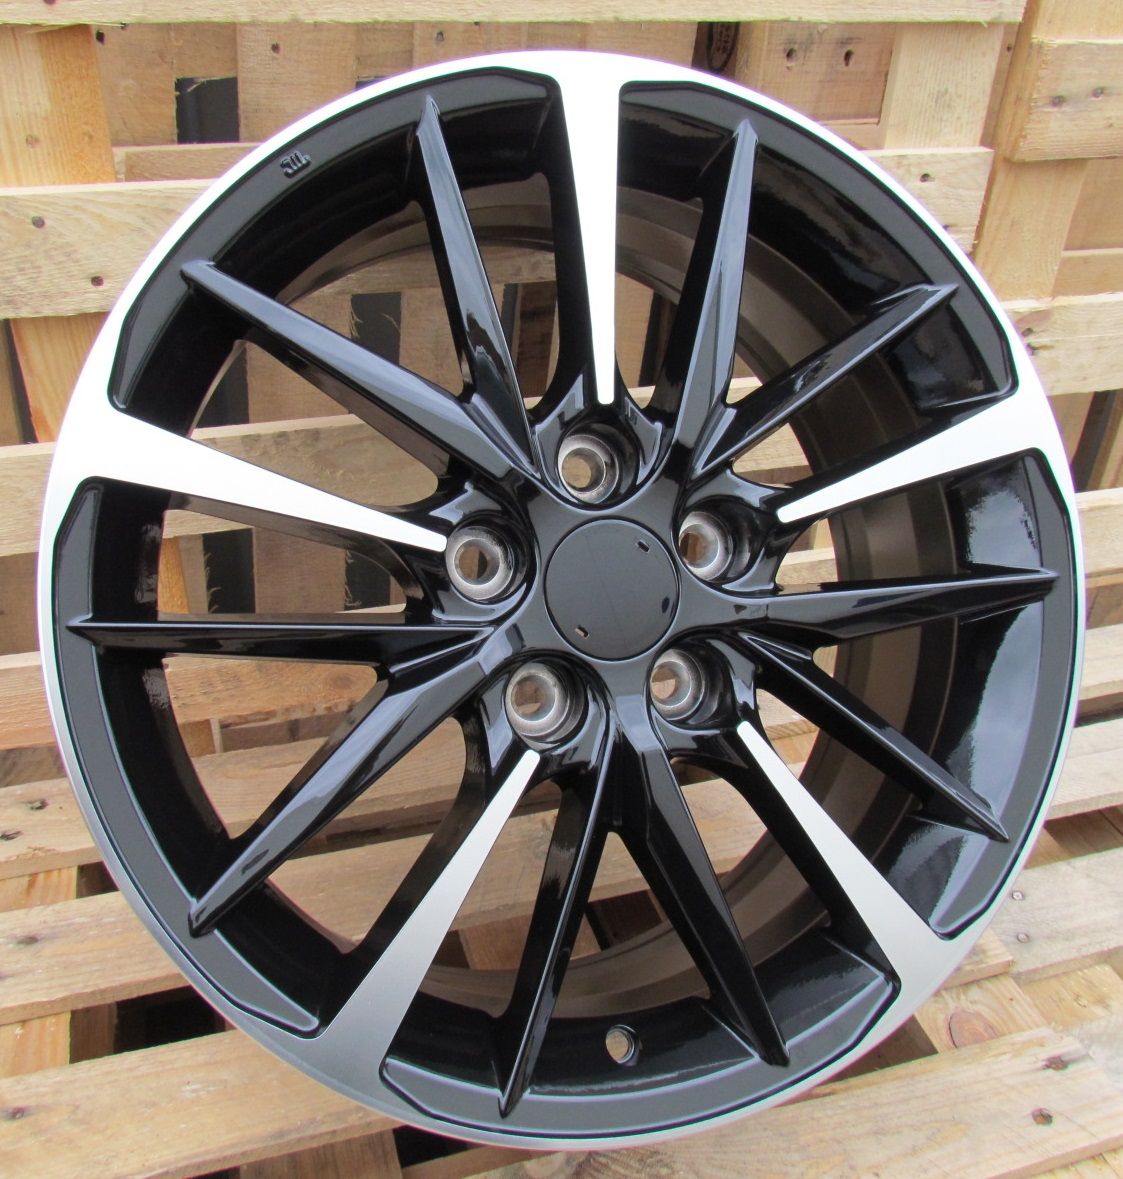 T17X7 5X114.3 ET45 60.1 XFE130 BLACK MACHINED FACE RWR TOY (P) 7x17 ET45 5x114.3